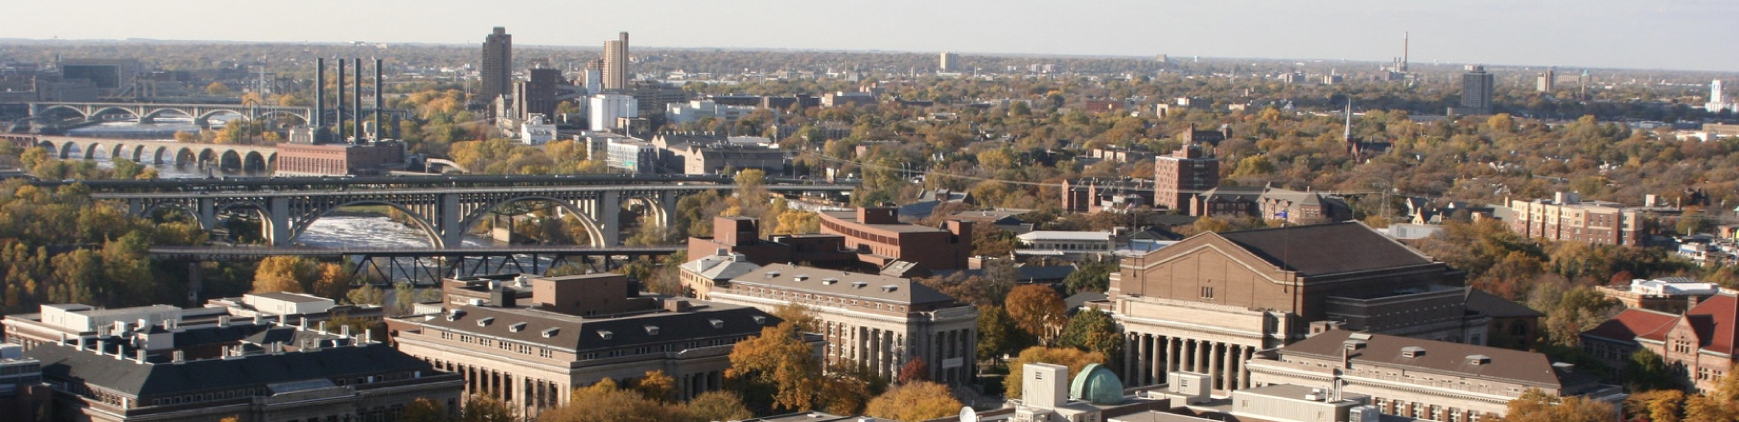 U of MN campus view from above